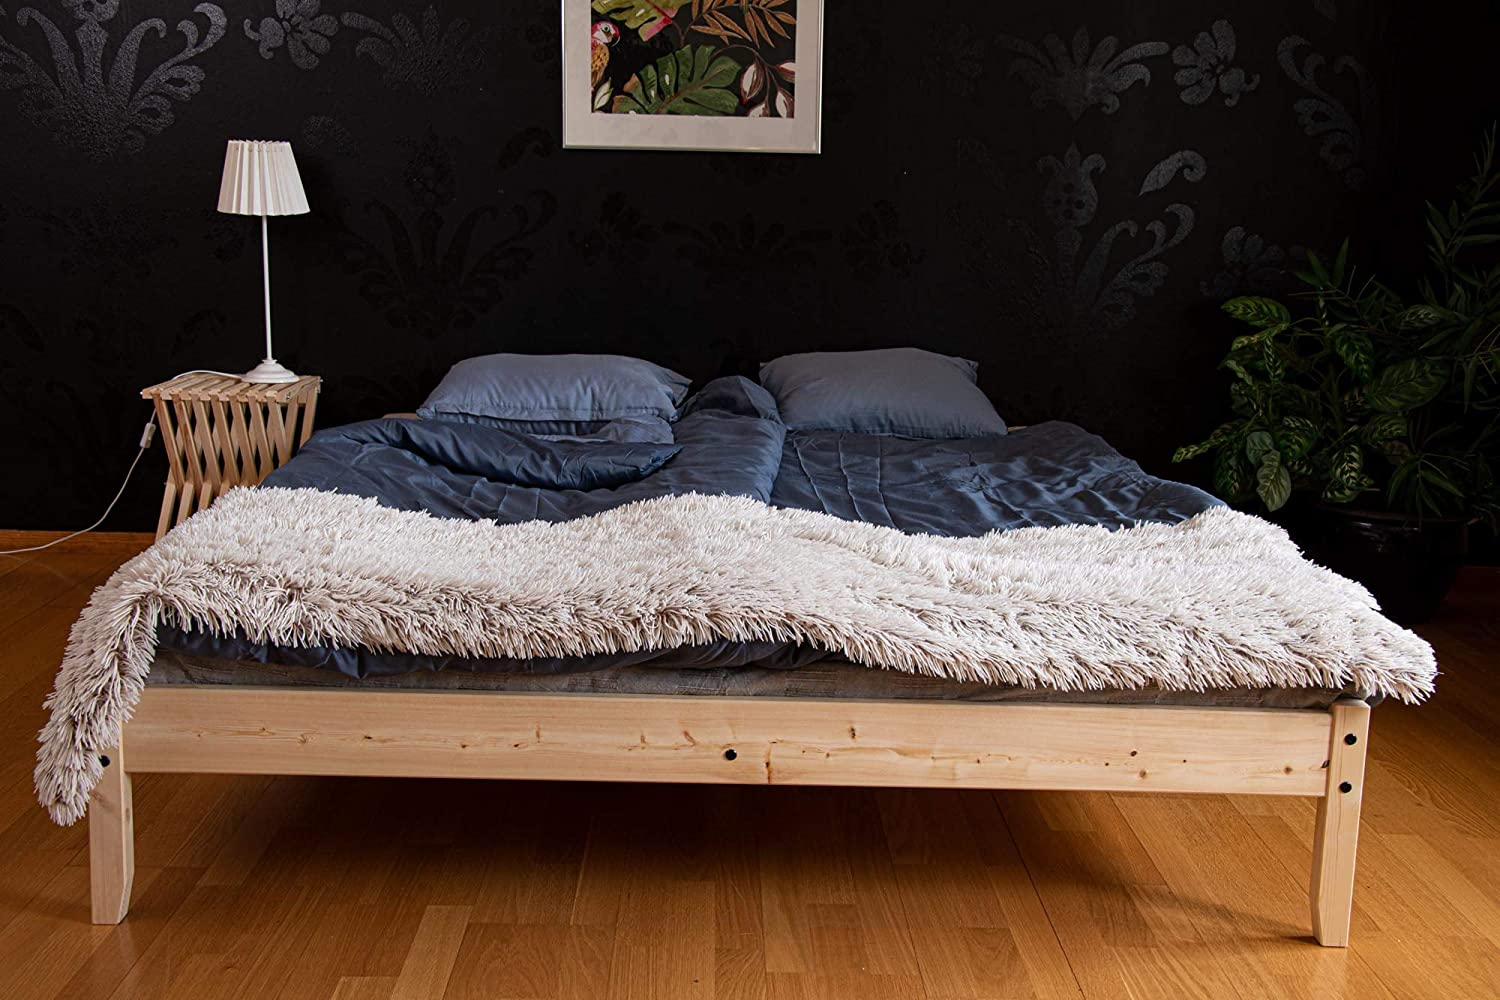 J.Johansson Springfield Wood Platform Bed Frame / Wooden Slates / 60x80 / Easy Assembly, Queen, Pine